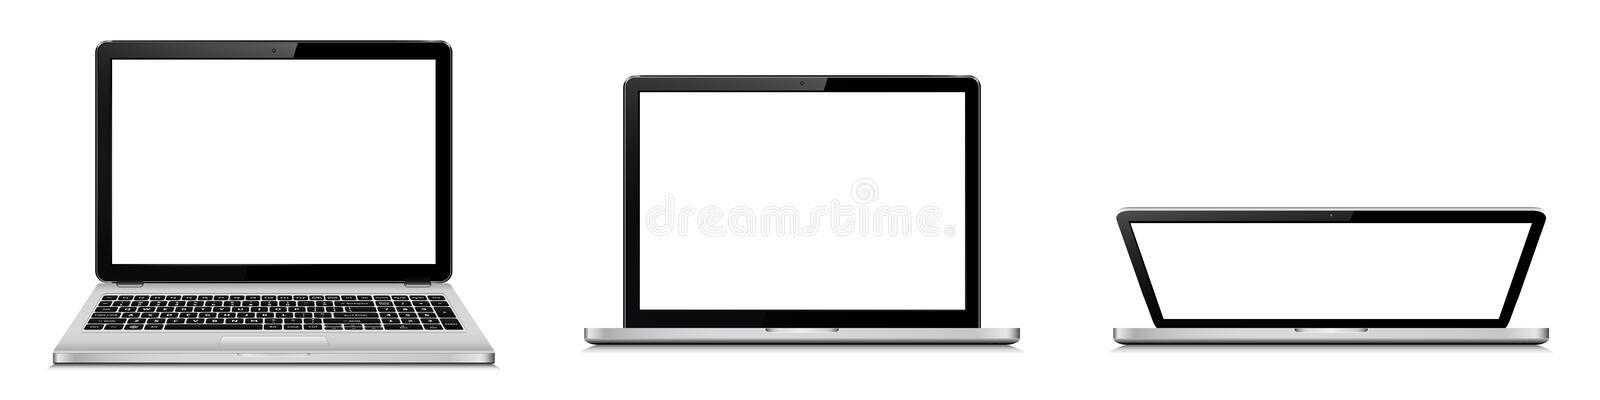 Laptop-open and closed lid stock photo